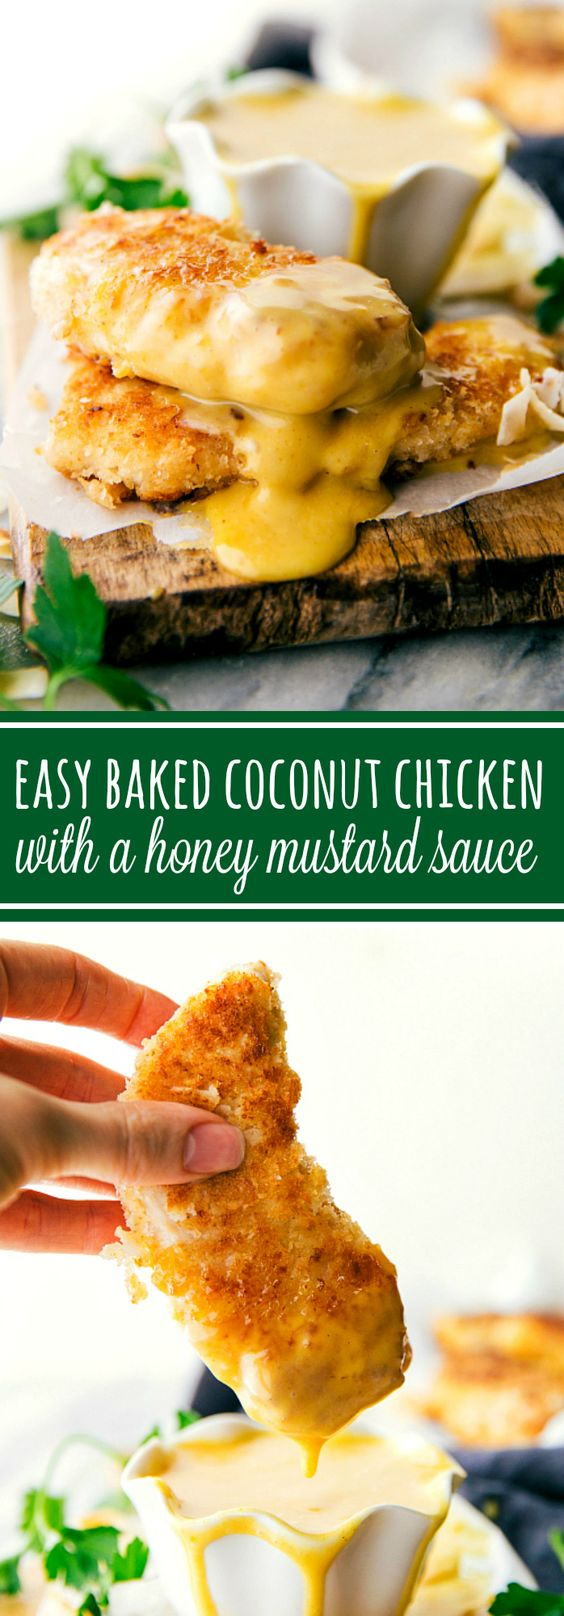 Delicious and simple baked coconut-crusted chicken tenders with an easy five-ingredient honey mustard dipping sauce.